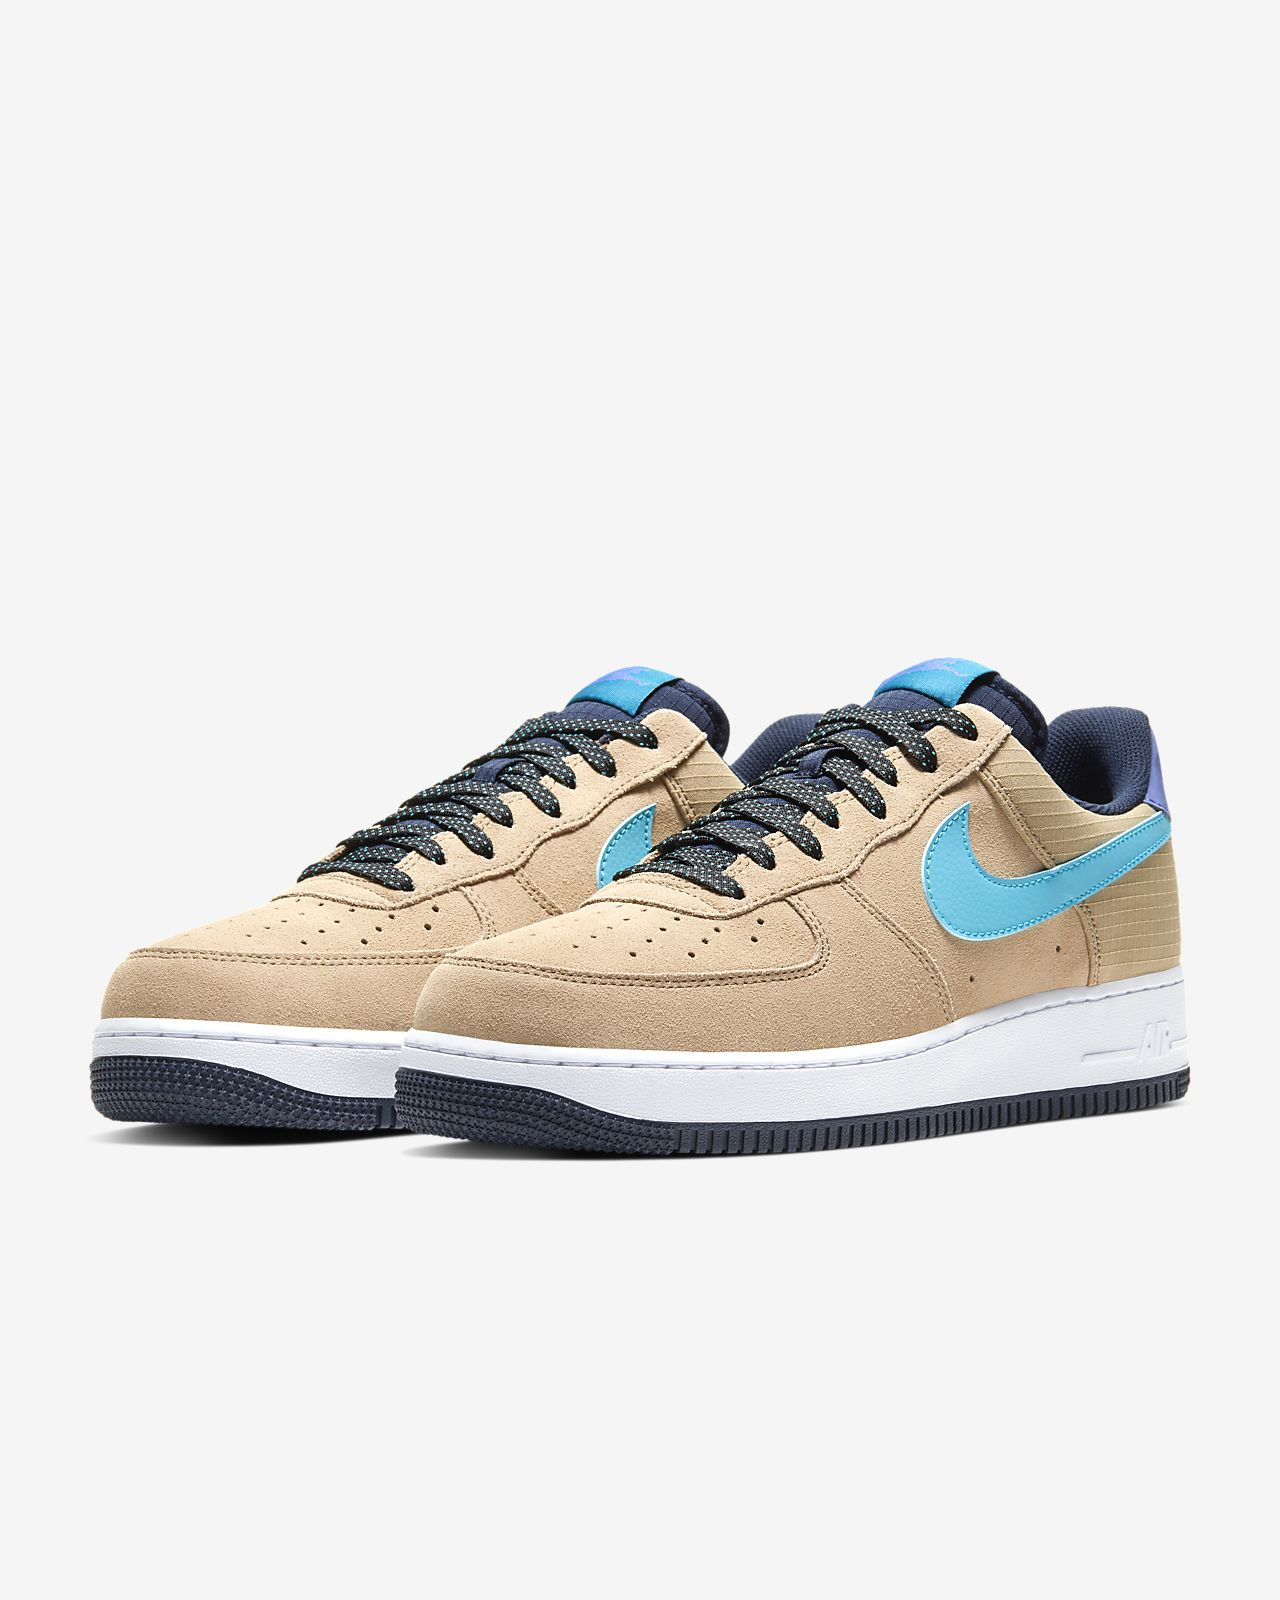 NIKE Official]Nike Air Force 1 '07 LV8